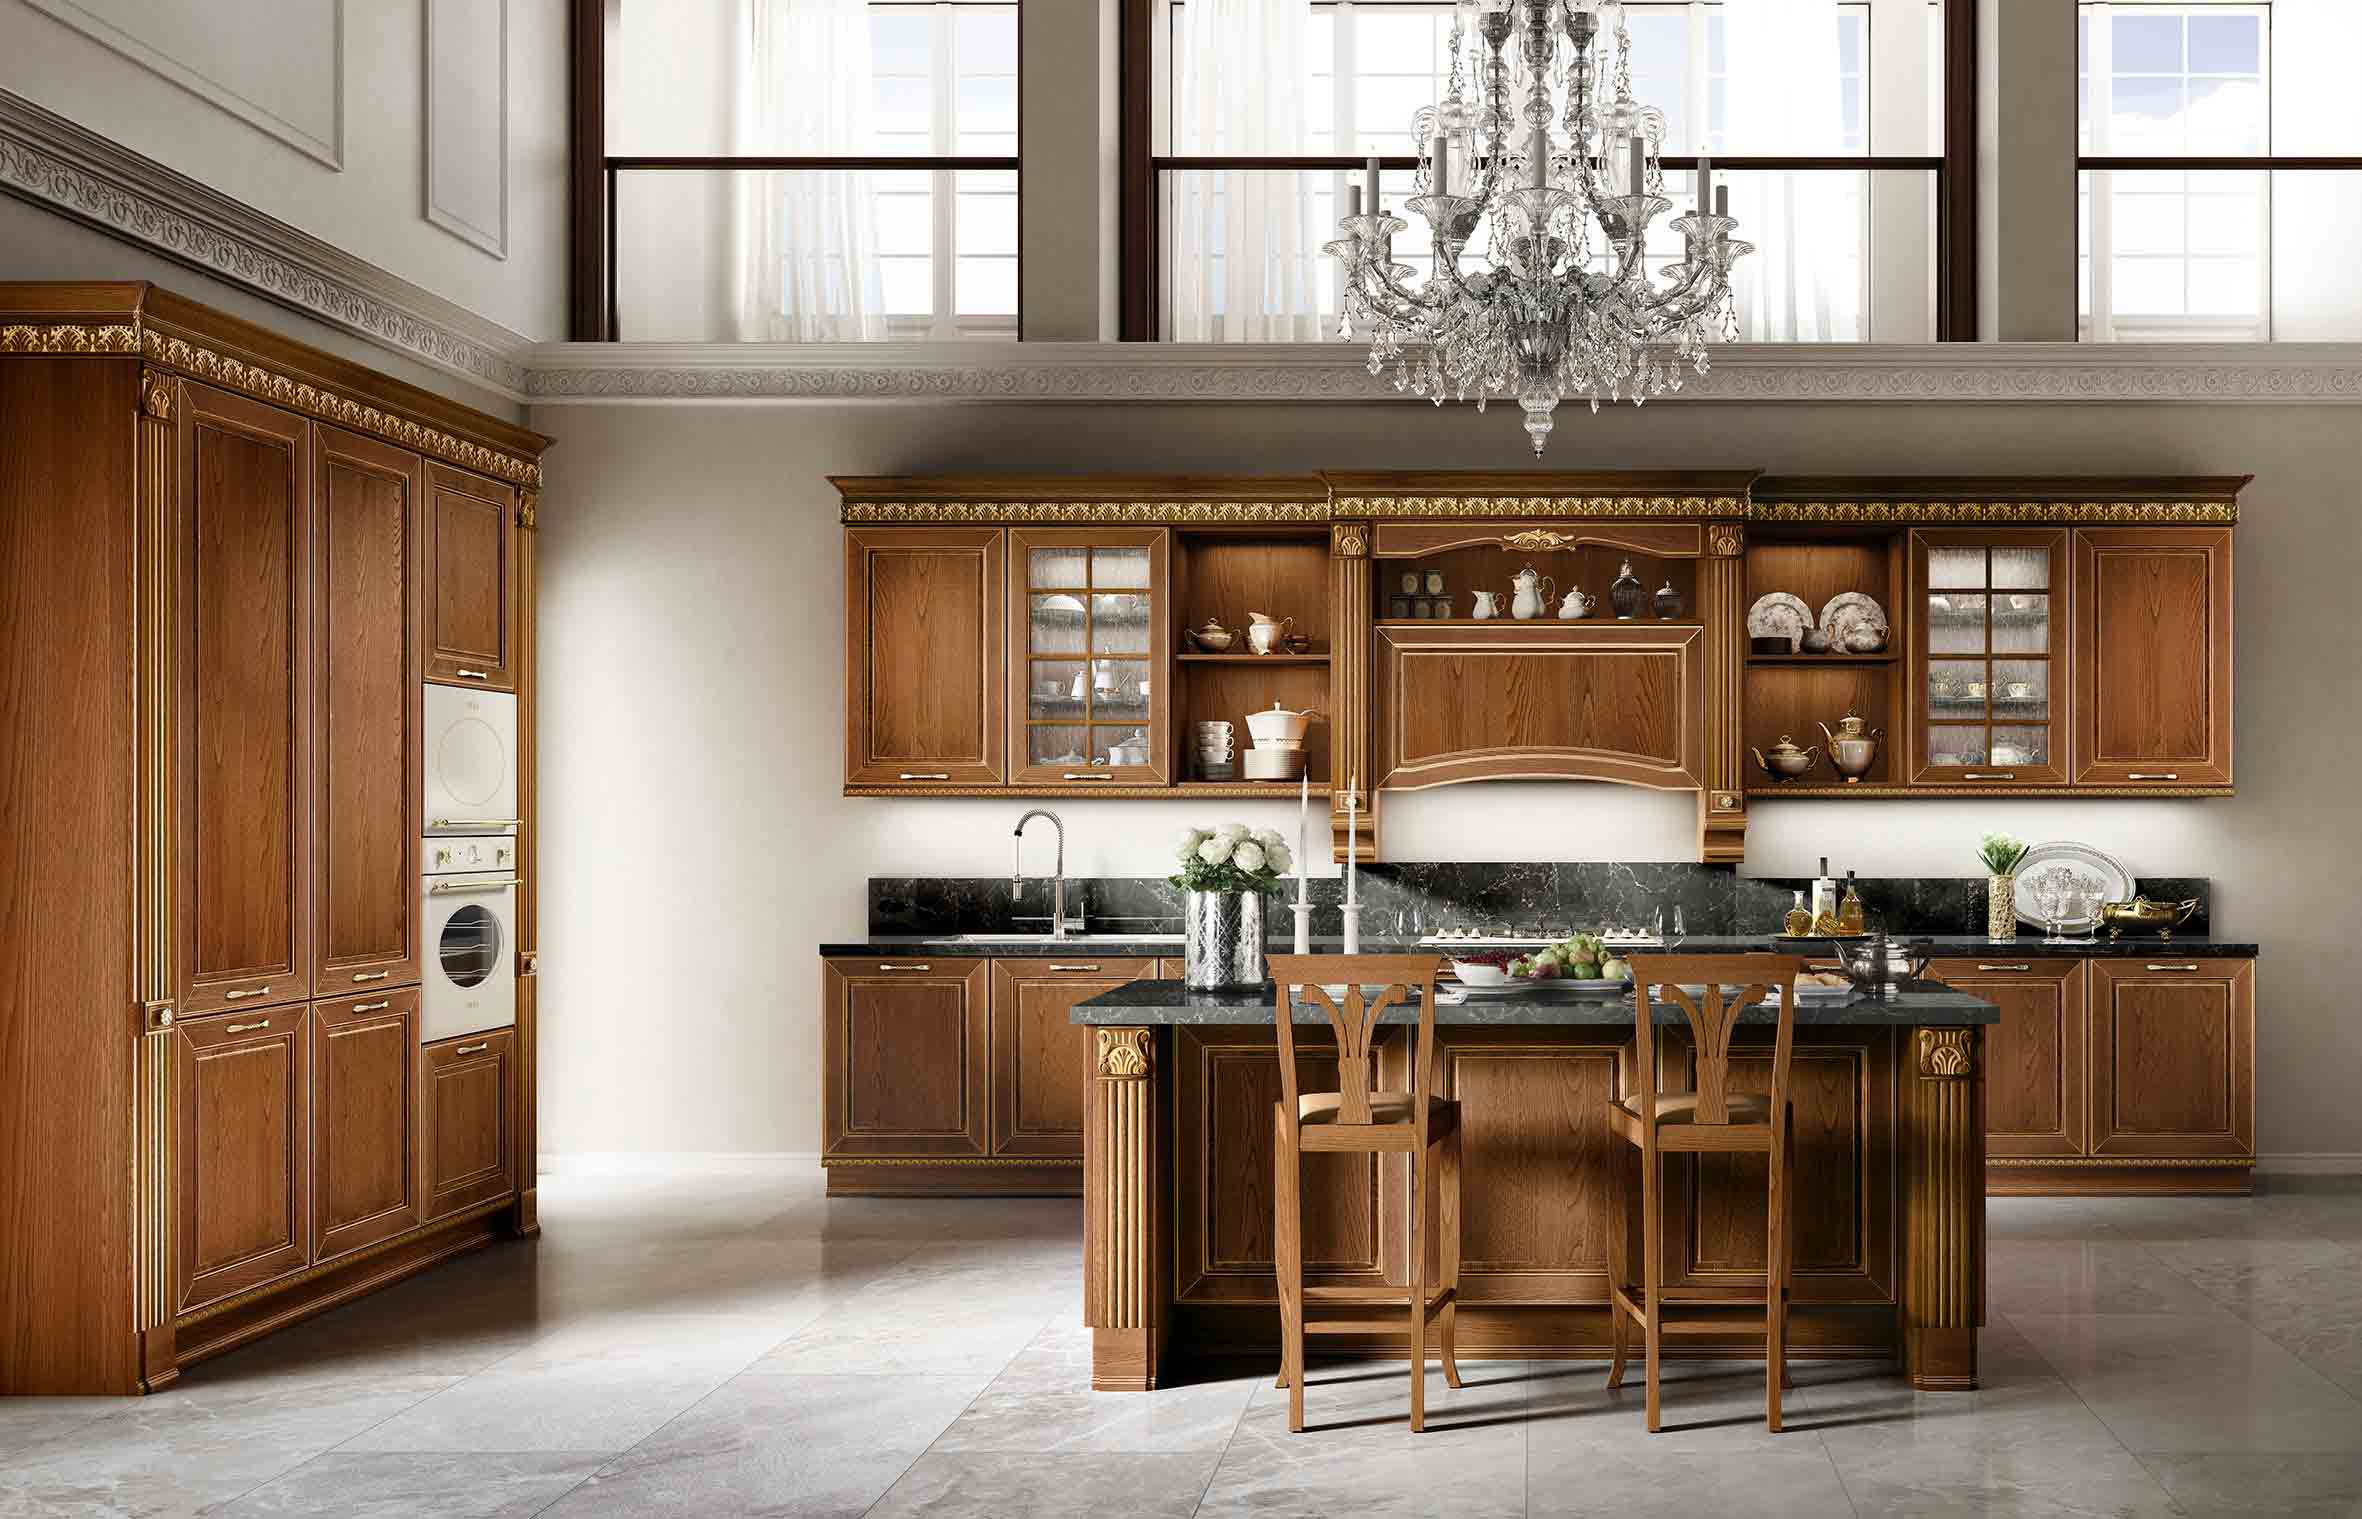 Classic Dolcevita Sydney Traditional Kitchens Renevotion - Eurolife